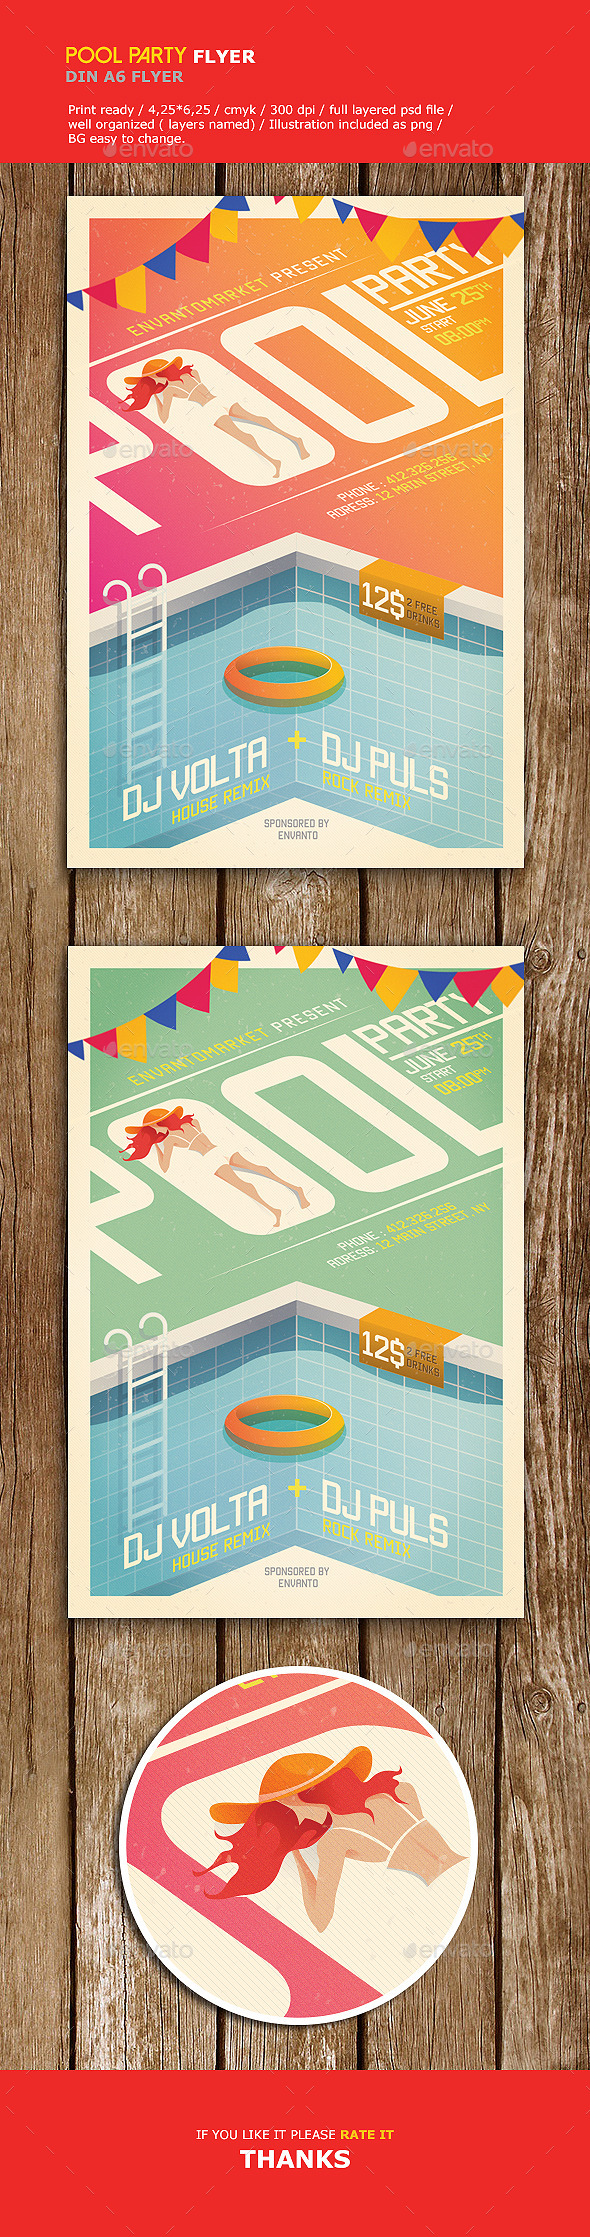 Pool Party Flyer  Party Flyer Font Logo And Flyer Template